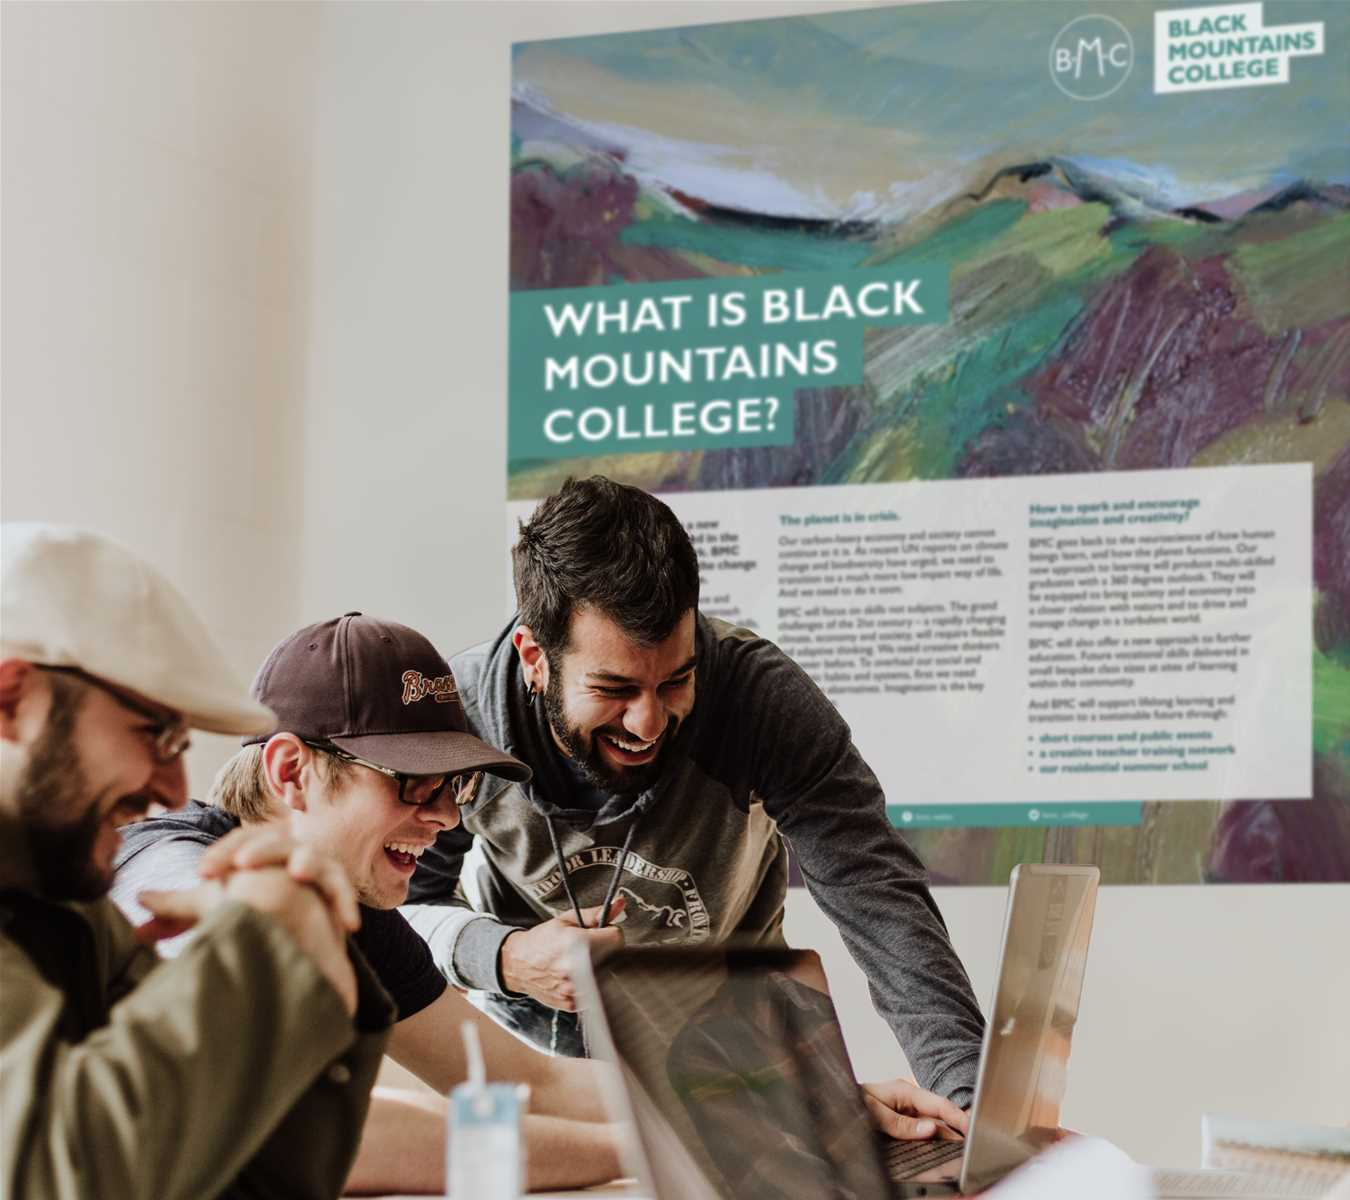 Black Mountains College